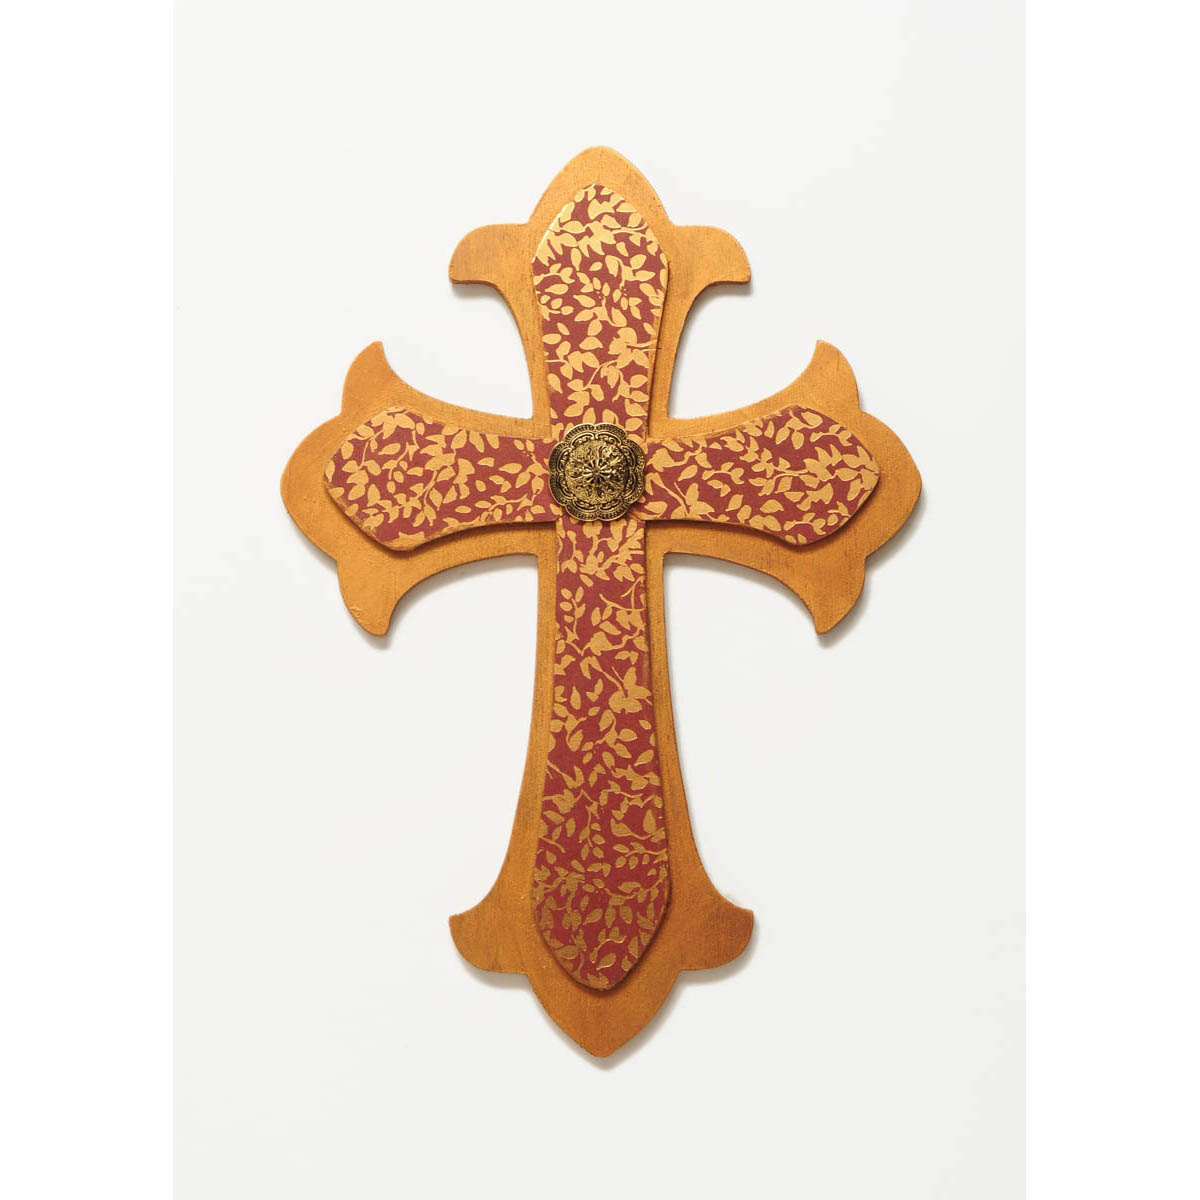 Plaid ® Wood Surfaces - Shape - Large Fleur De Lis Cross - 97499